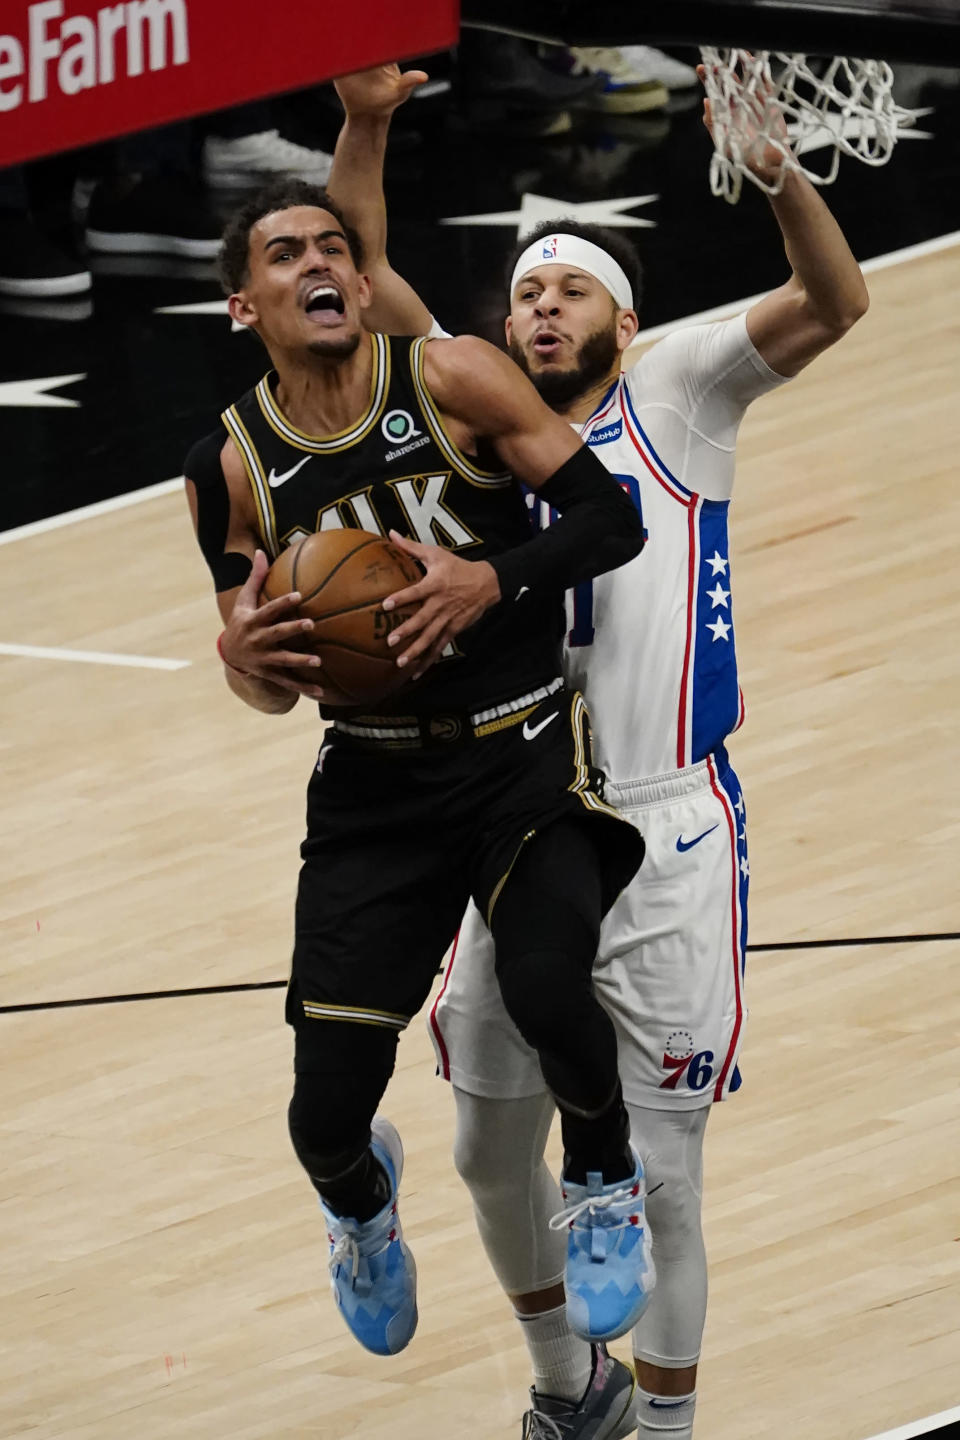 Atlanta Hawks guard Trae Young (11) goes up for a basket as Philadelphia 76ers guard Seth Curry (31) defends during the second half of Game 6 of an NBA basketball Eastern Conference semifinal series Friday, June 18, 2021, in Atlanta. (AP Photo/John Bazemore)